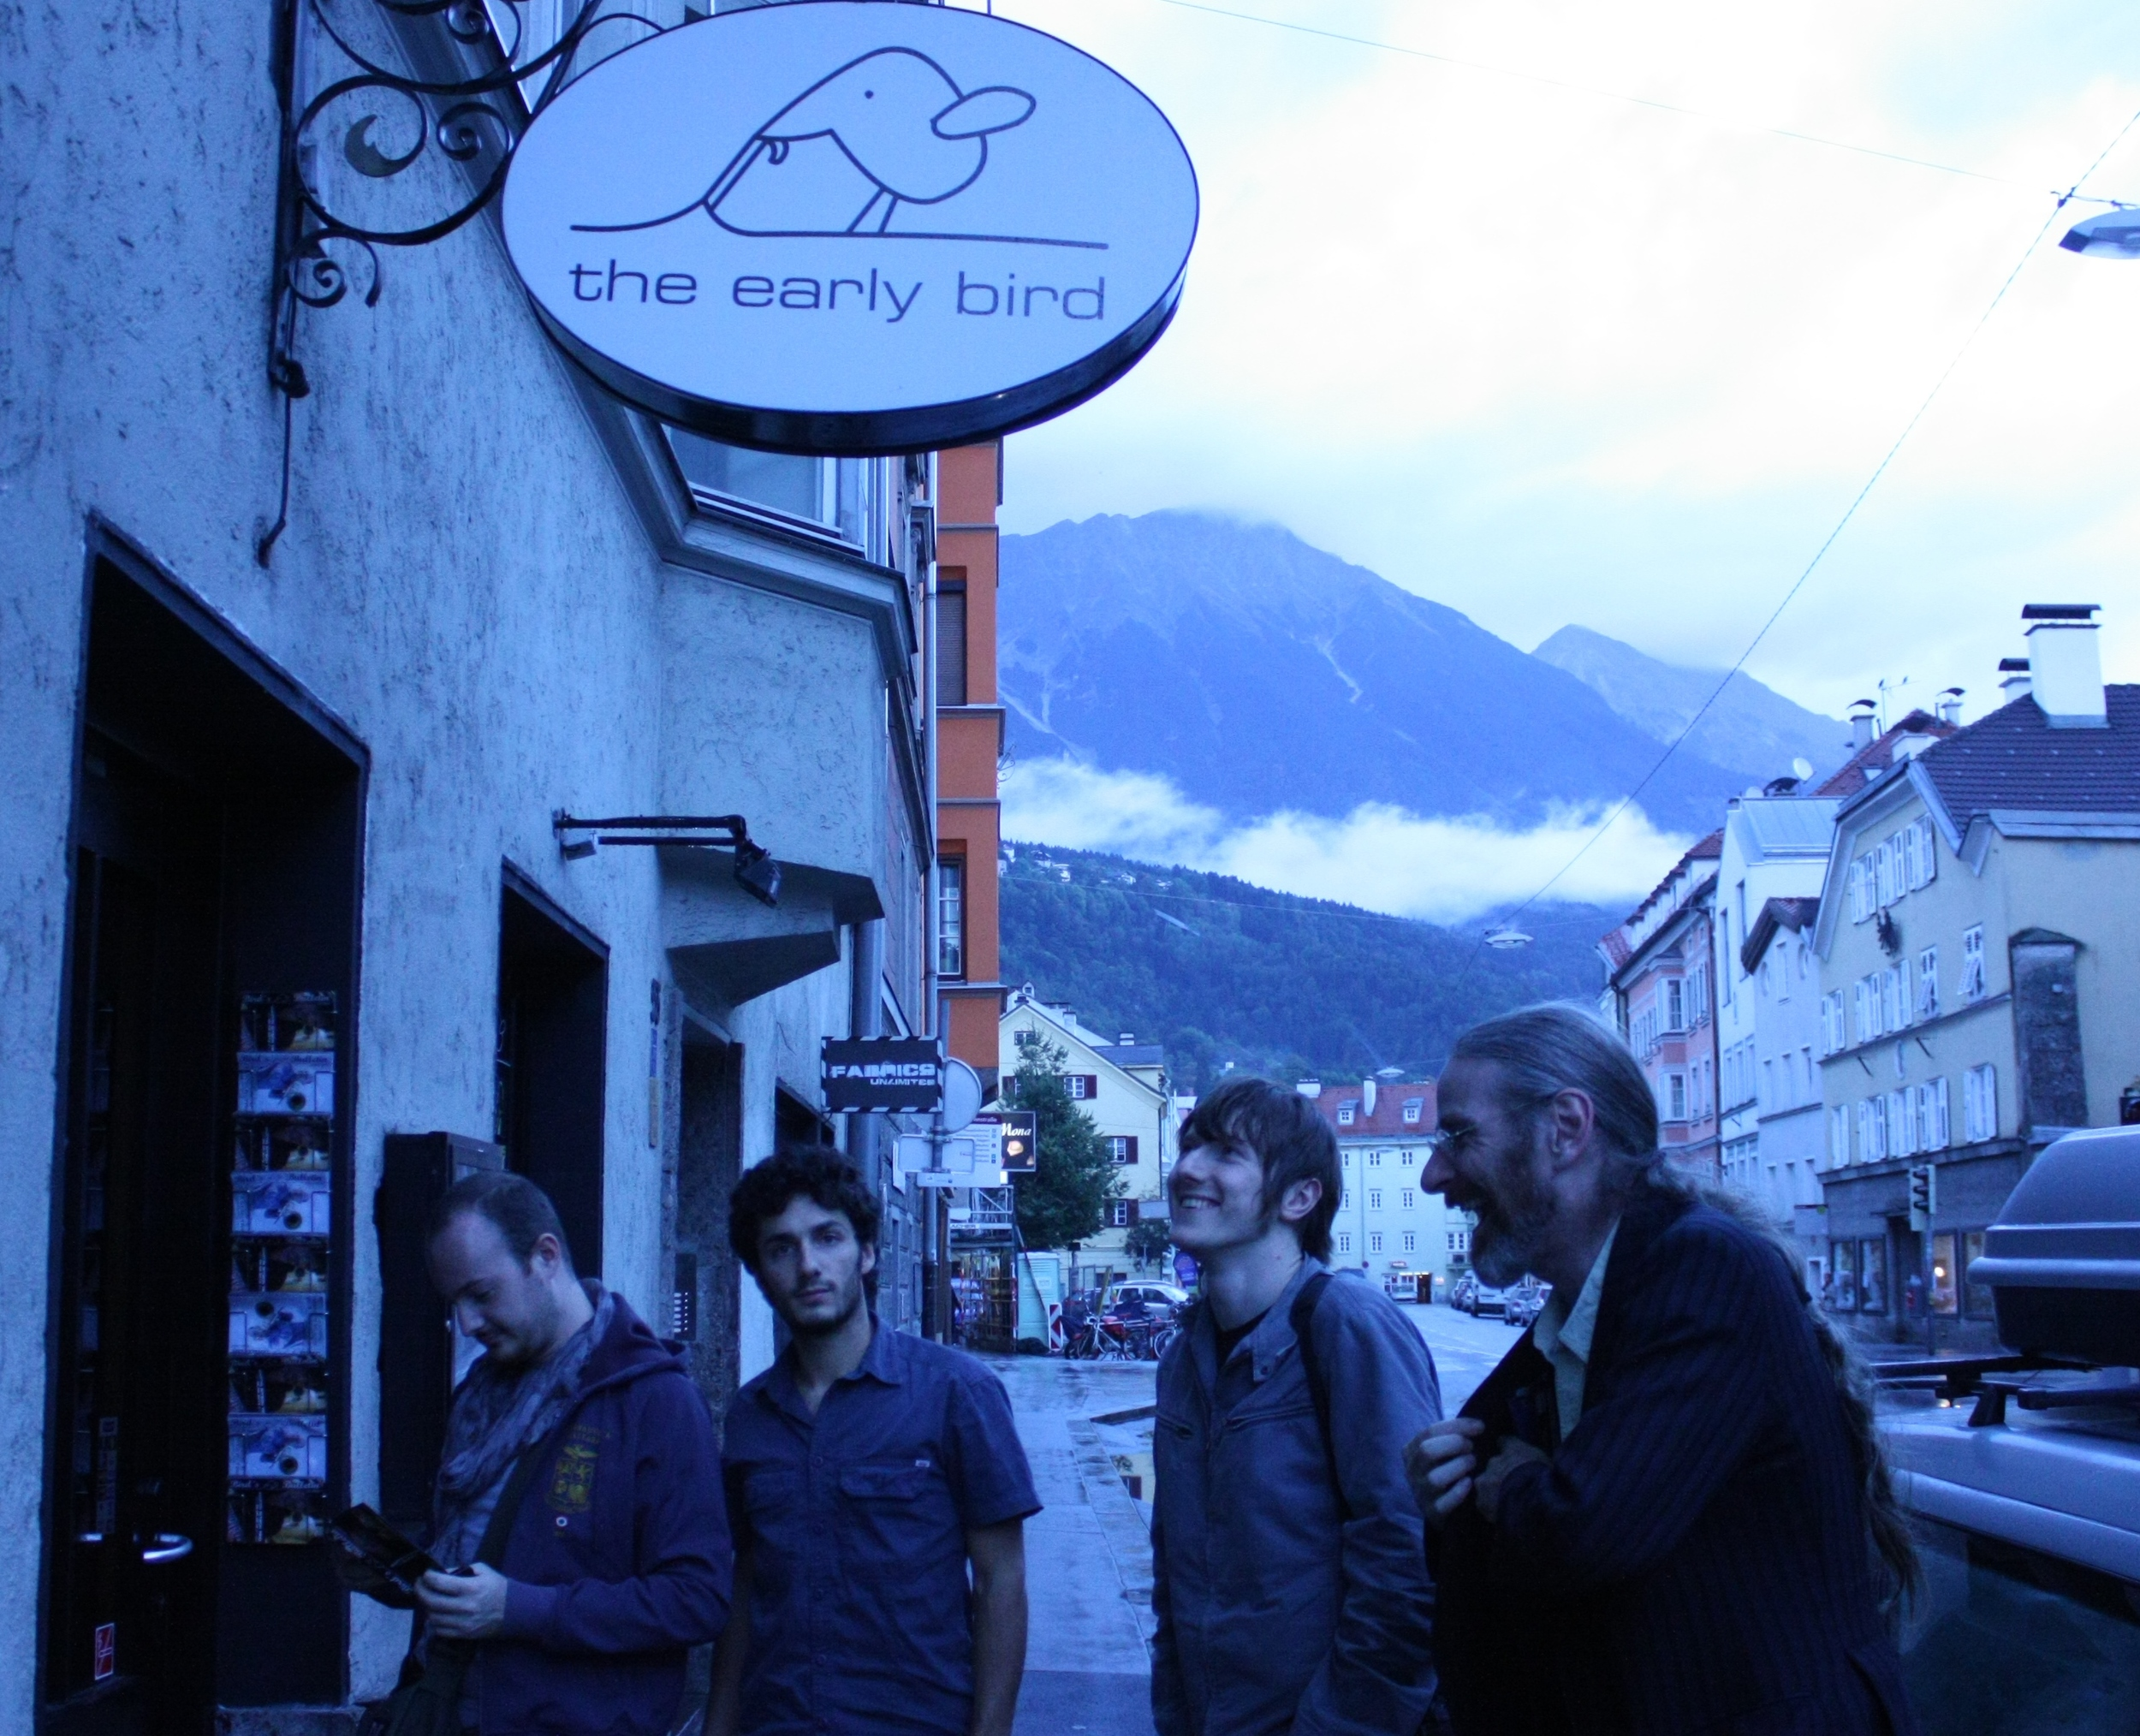 DAY 8: Innsbruck. Arriving at The Early Bird, one of the coolest Jazz themed venues I've ever been in. Owner Florian makes us some nice food.